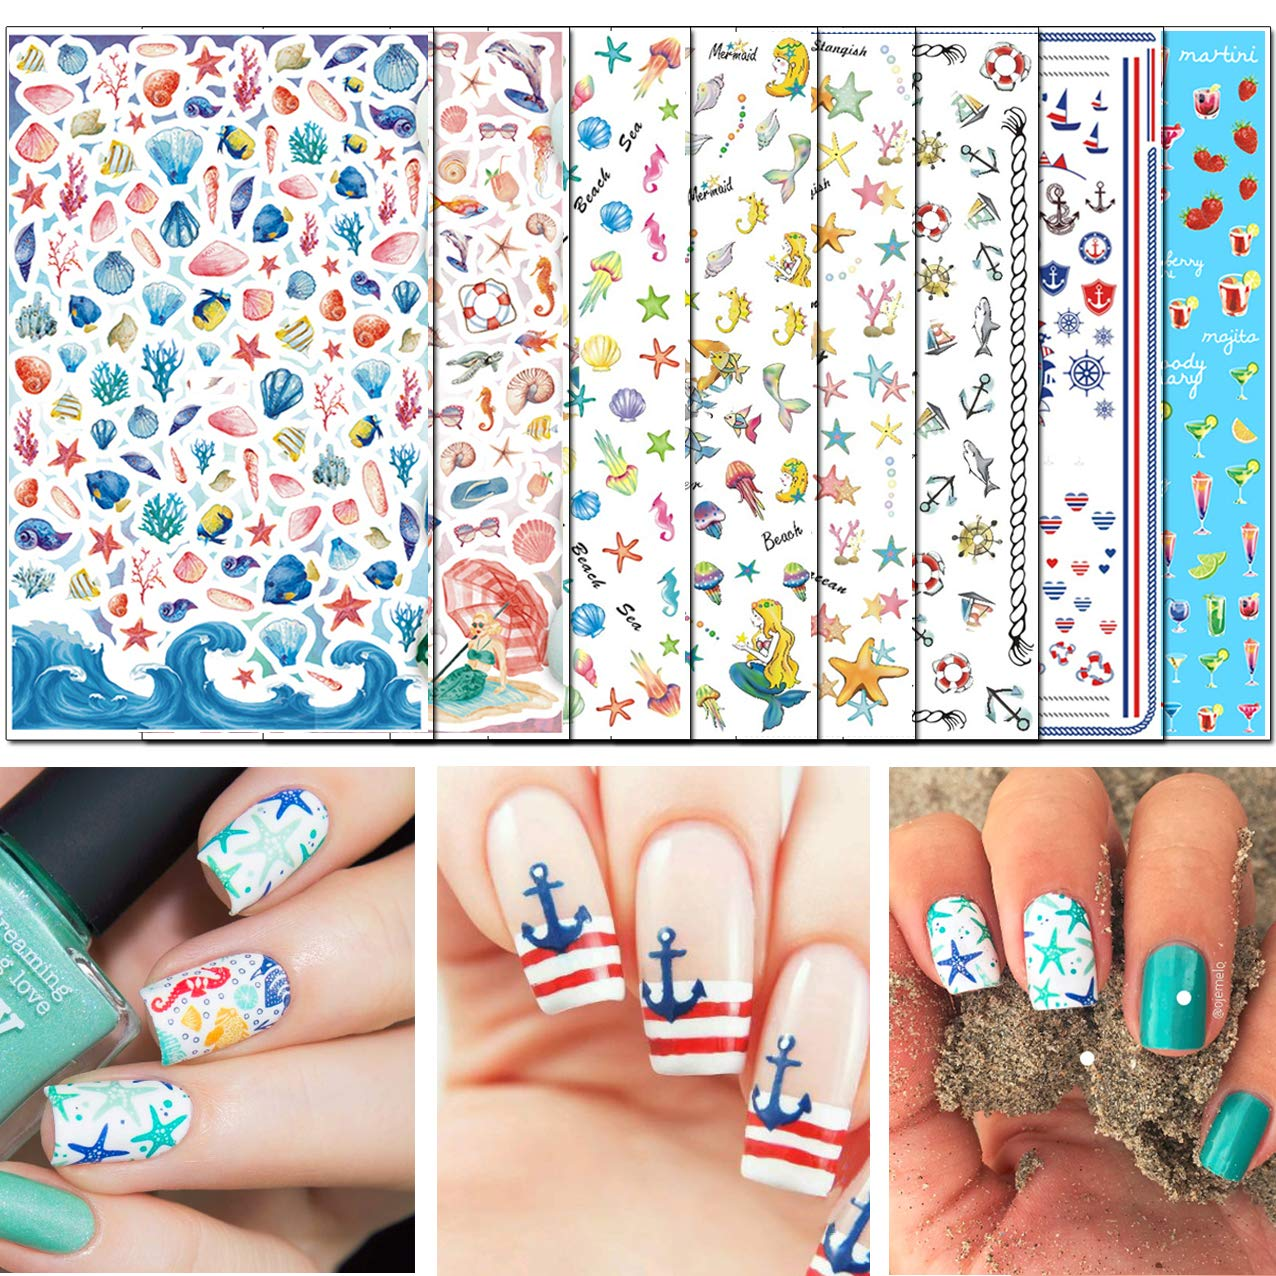 TailaiMei Summer Nail Decals Stickers, 1500+ Pcs Self-Adhesive Tips DIY Nail Art Design Stencil (8 Large Sheets)